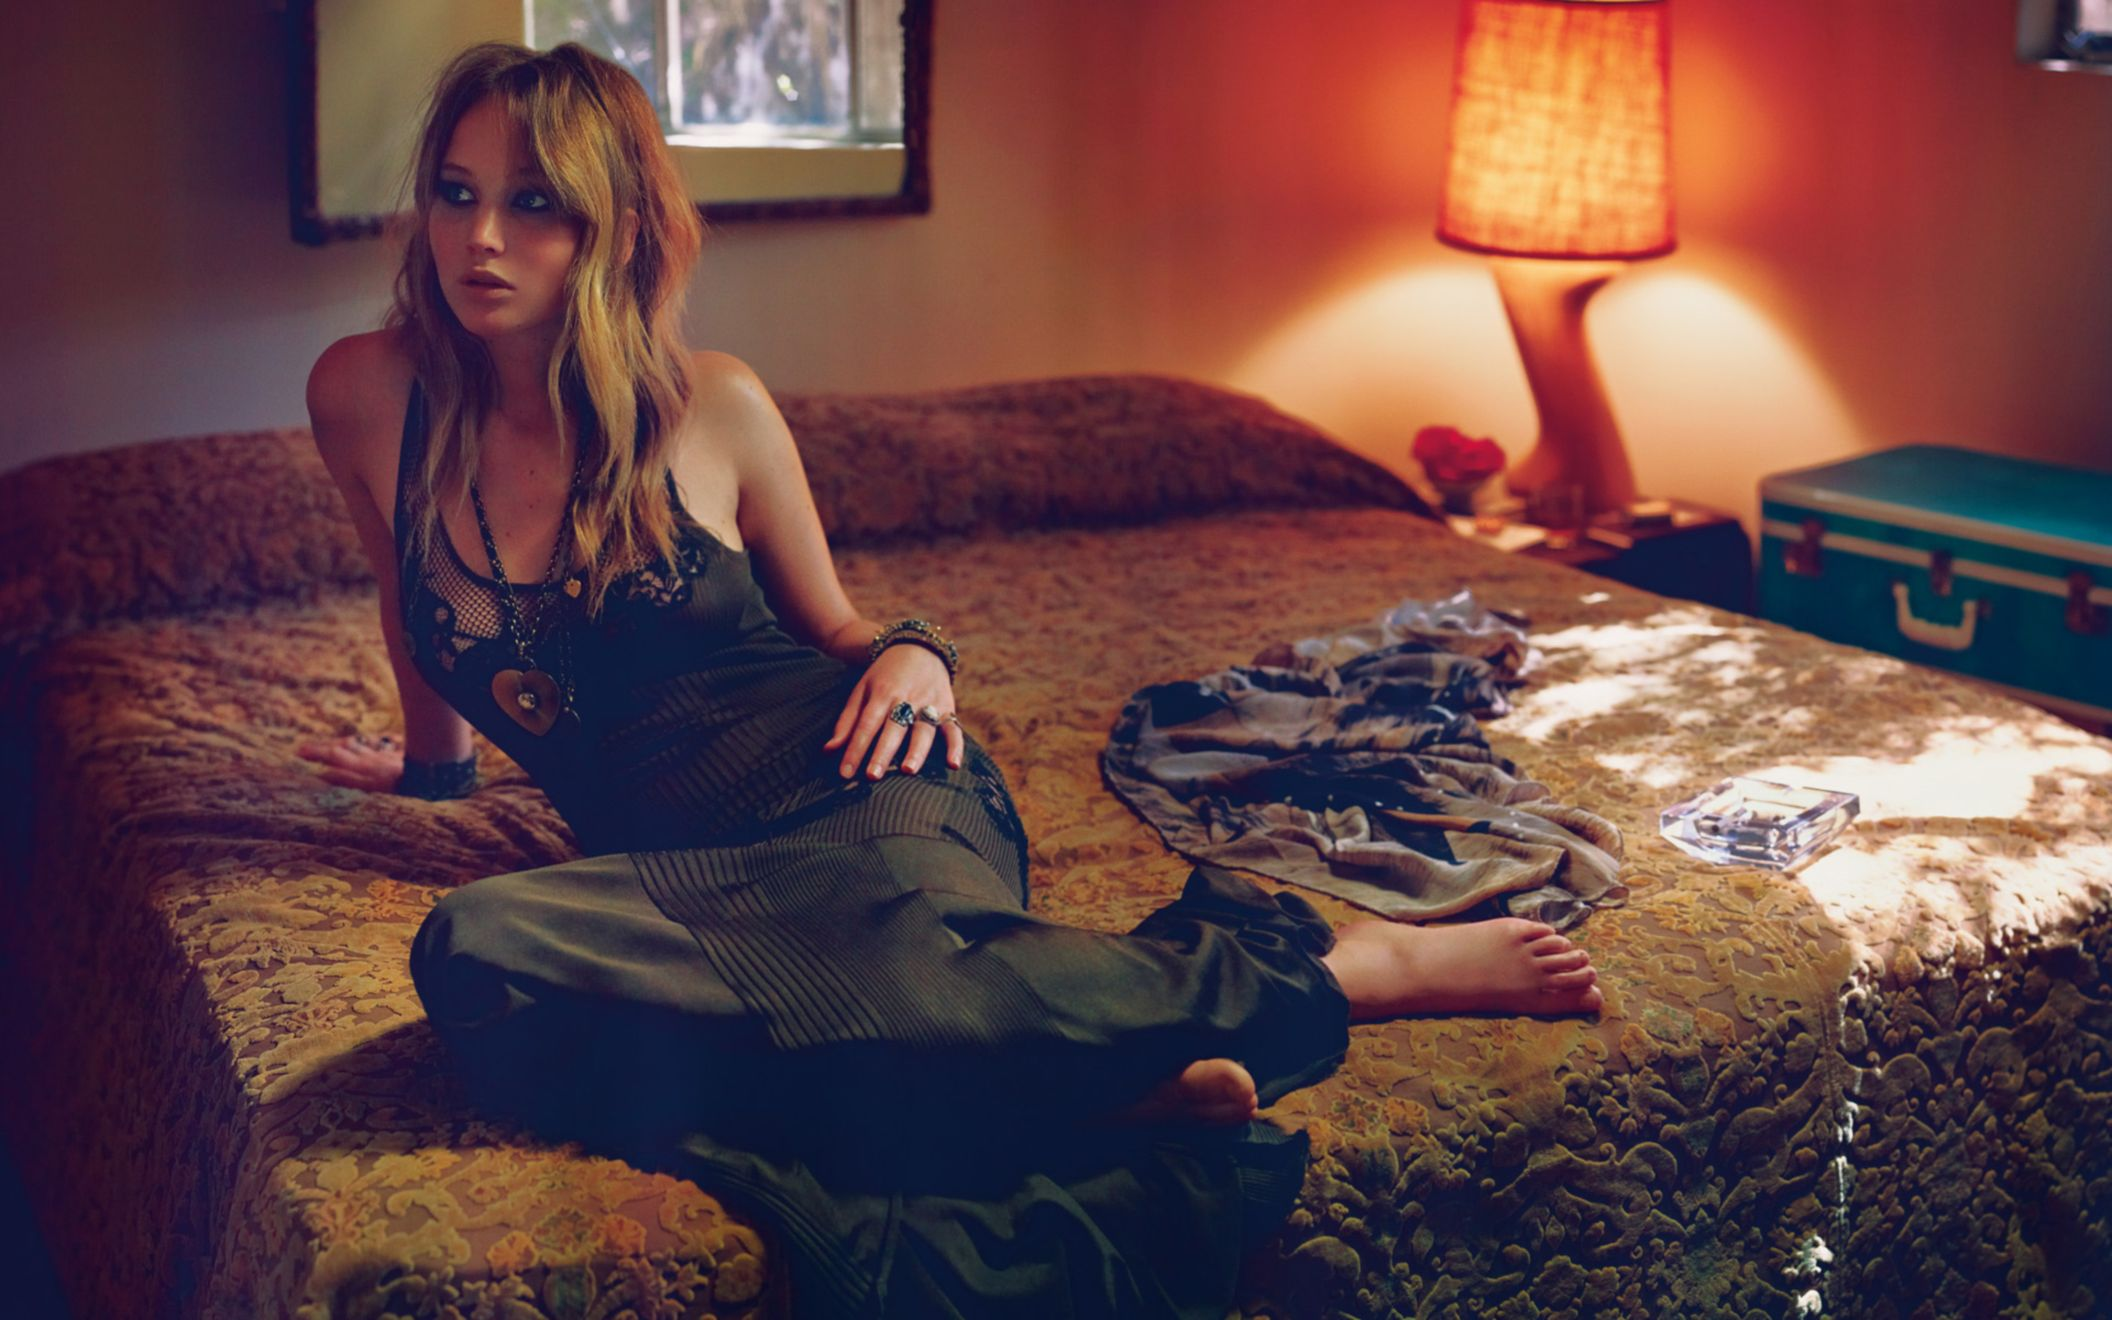 Download free HD Jennifer Lawrence in Vogue Italy Wide Wallpaper, image